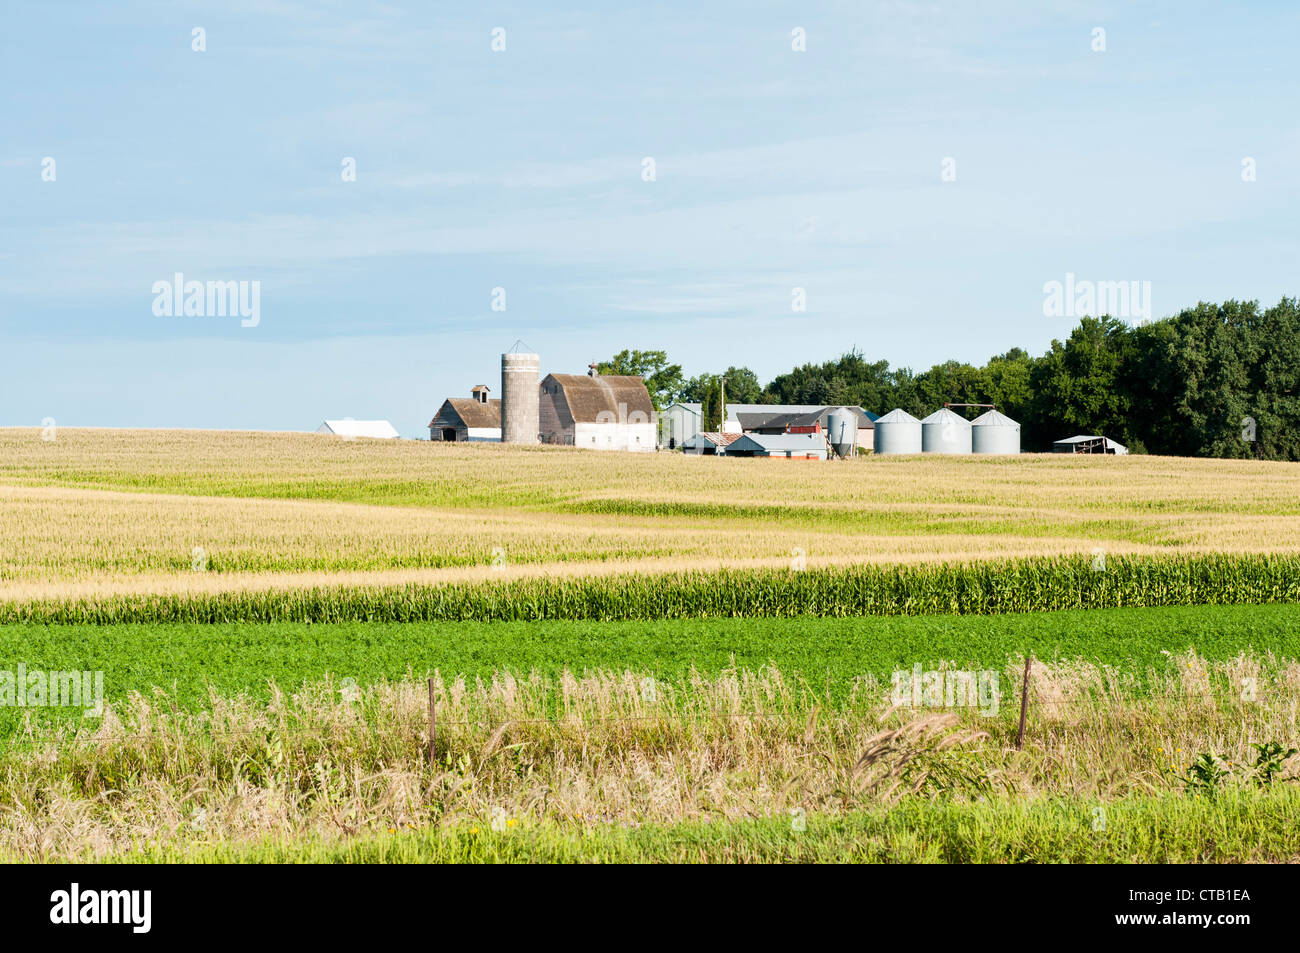 Farm buildings are shown with a corn field in the foreground. - Stock Image